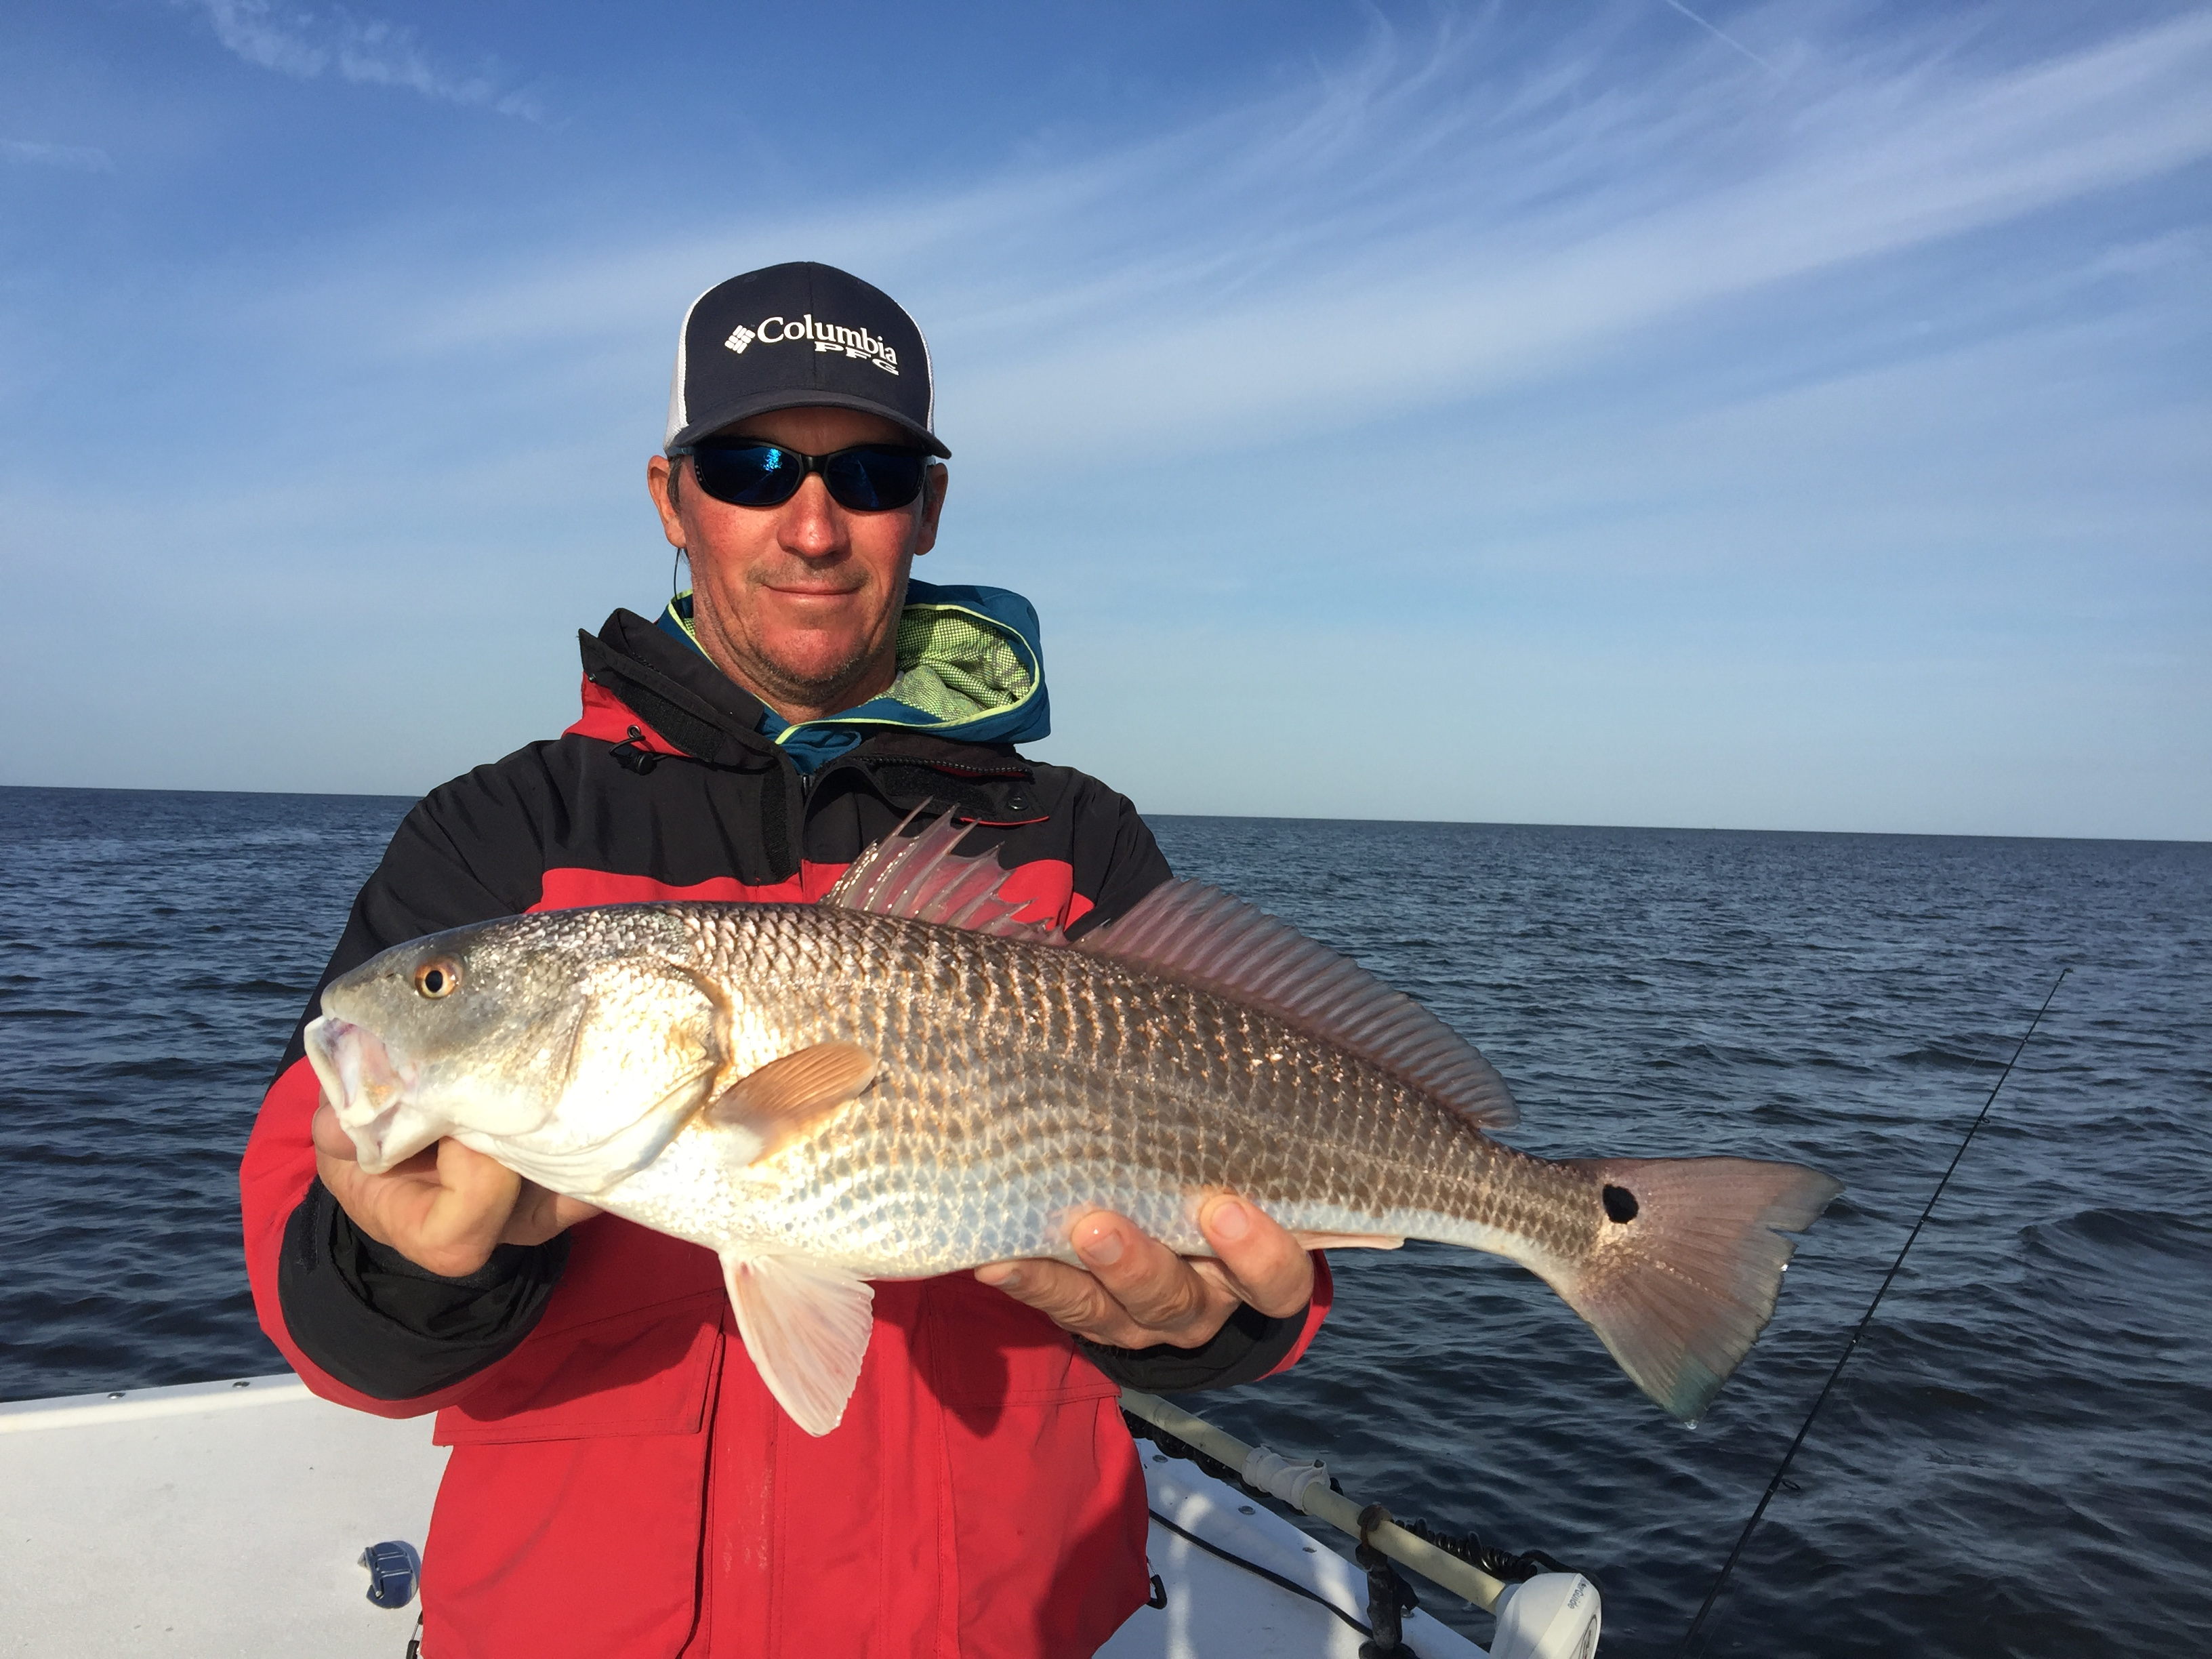 suwannee river cedar key fishing report 04 2017 coastal